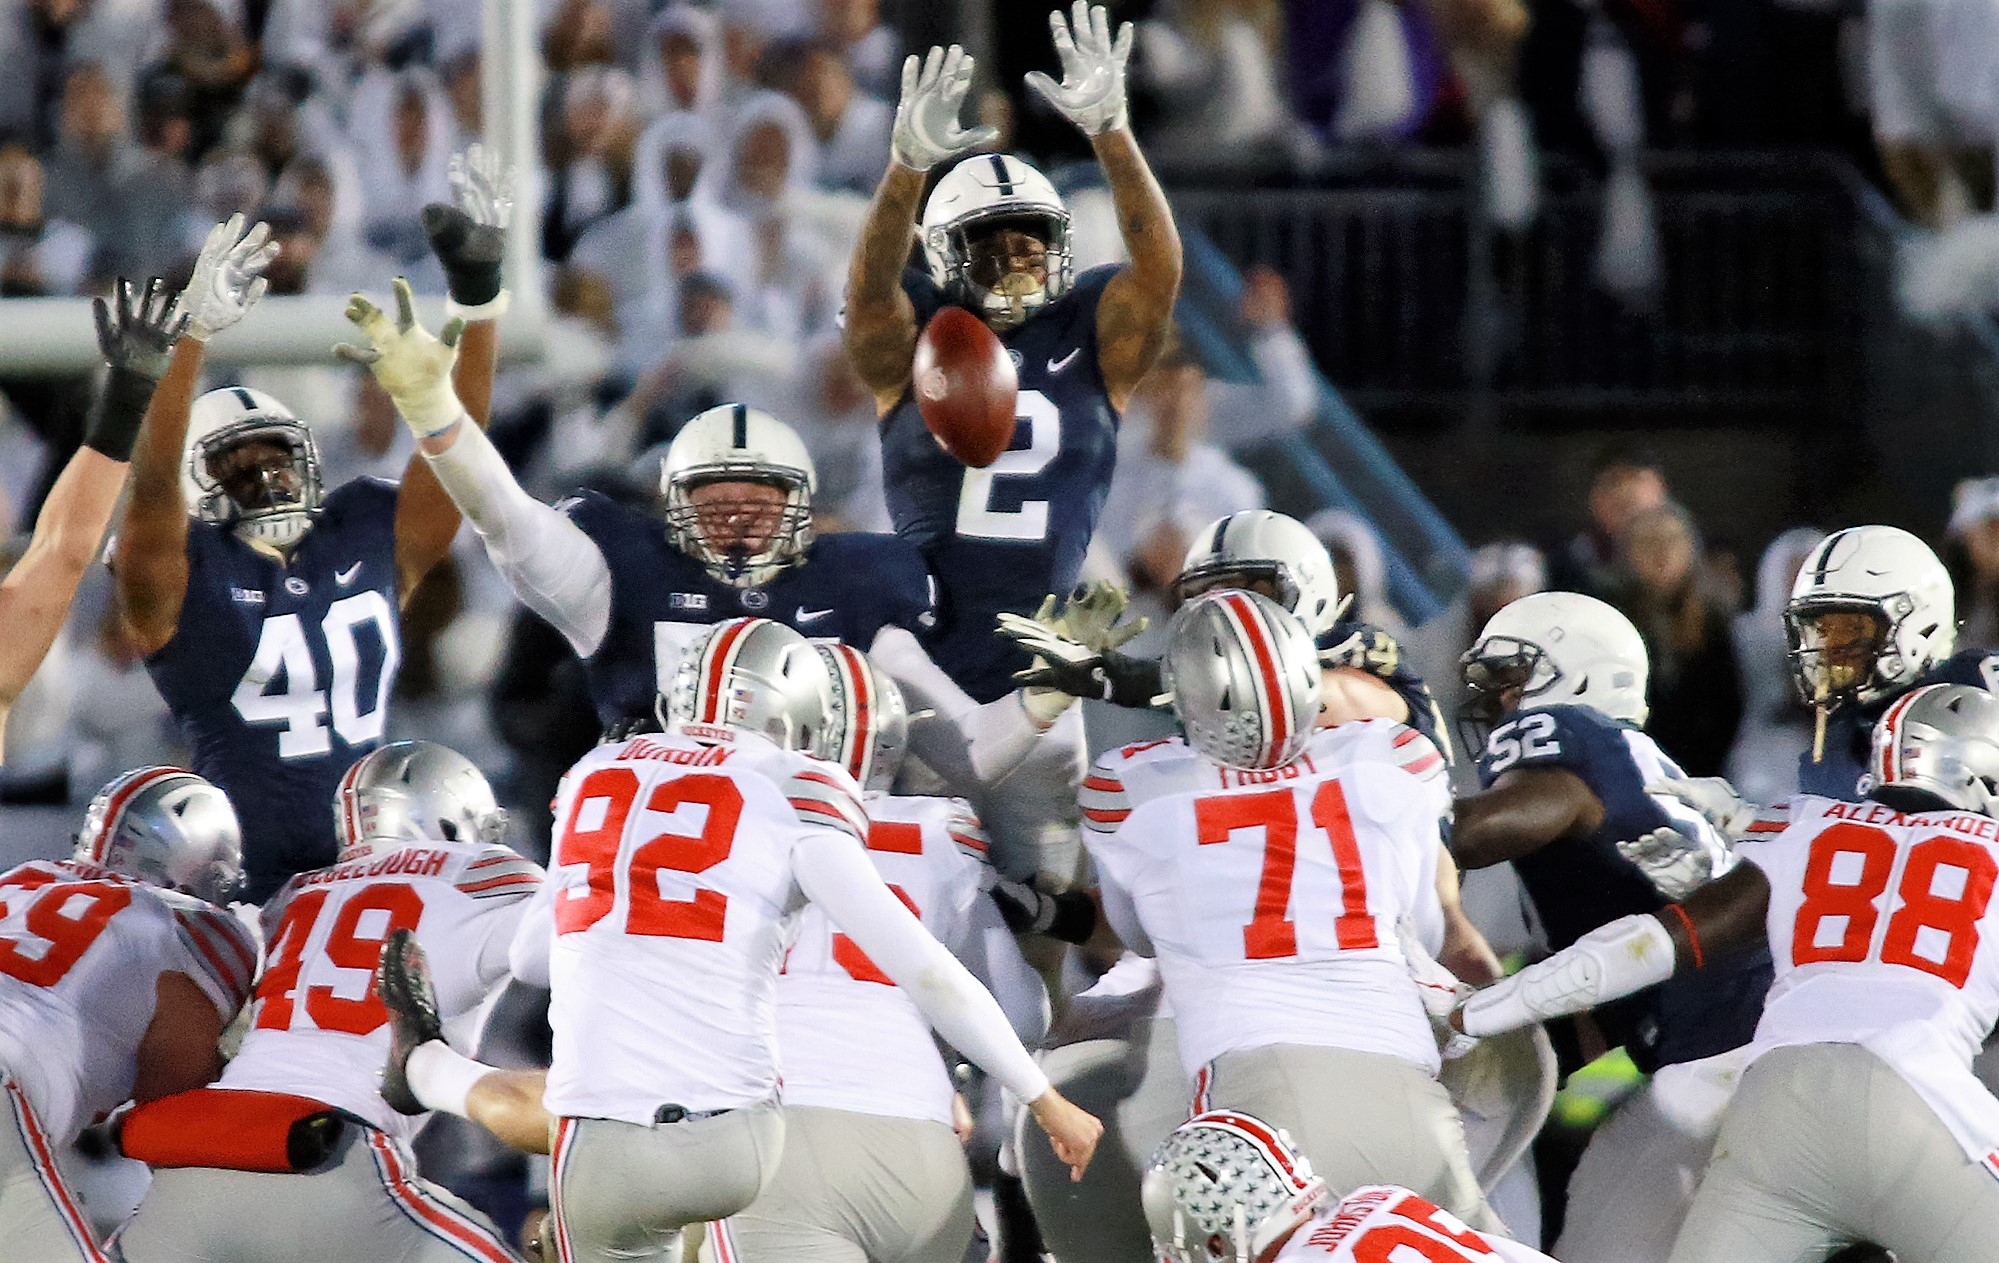 Penn State Earns First National Ranking Since 2011; Nittany Lions in at No. 24 in AP Top 25